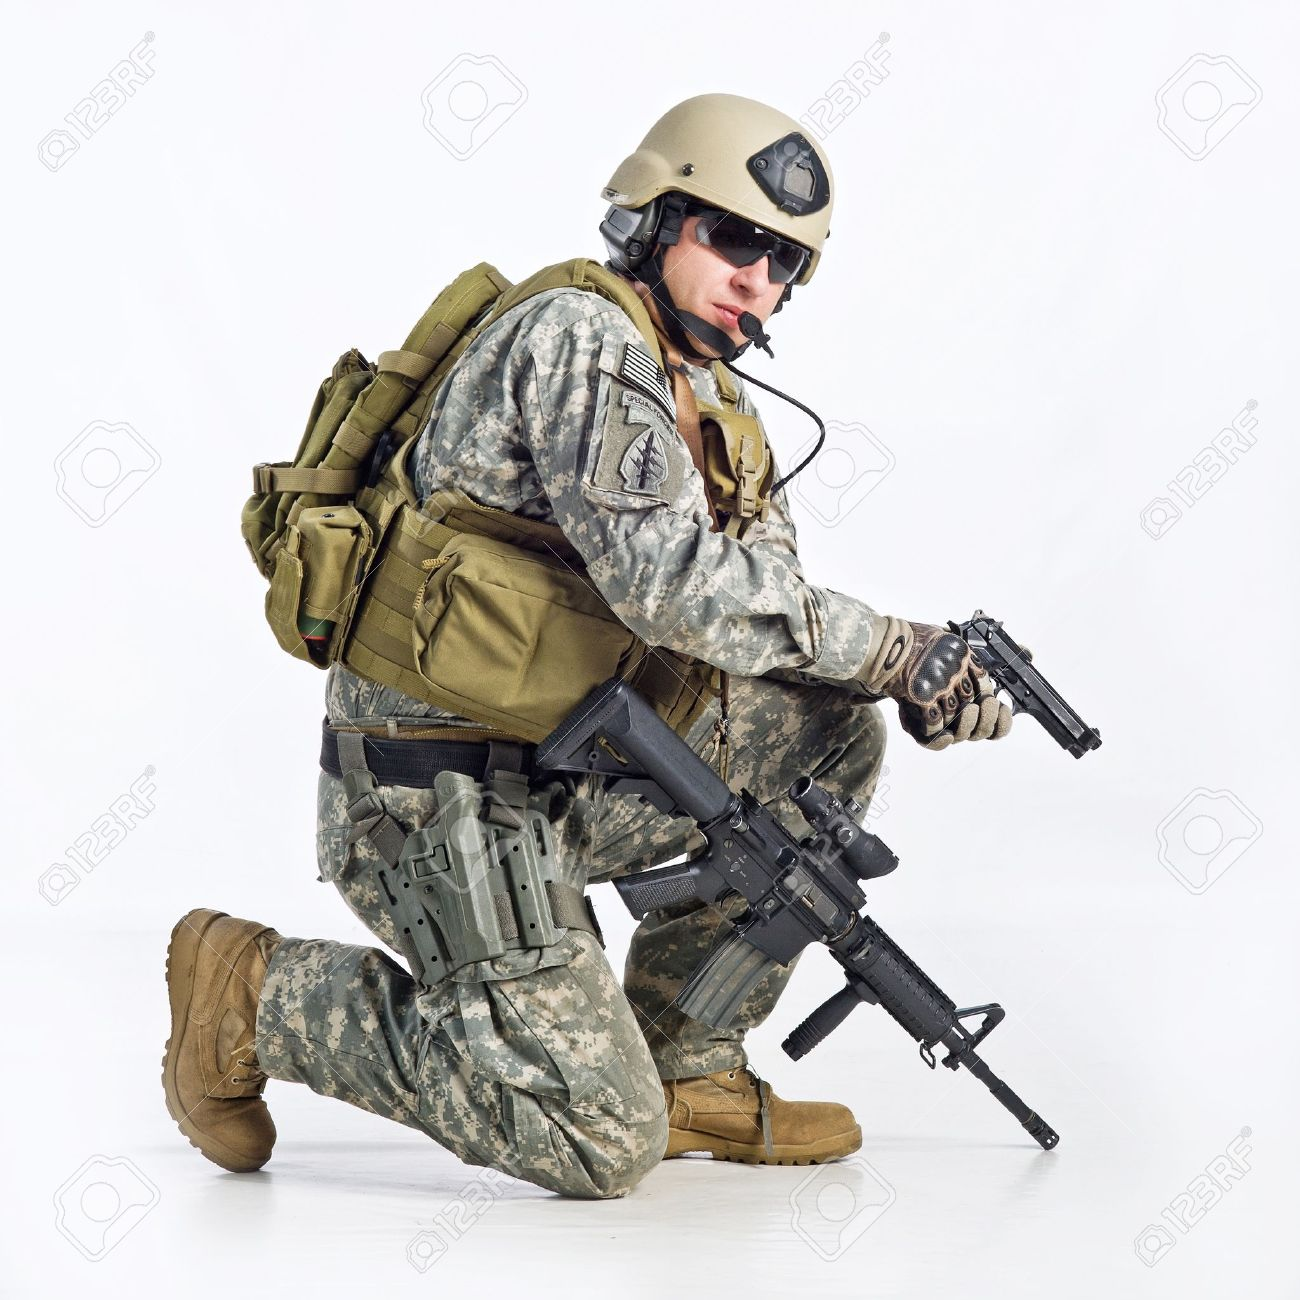 1300x1300 Swat Team Officer On White Background Stock Photo, Picture